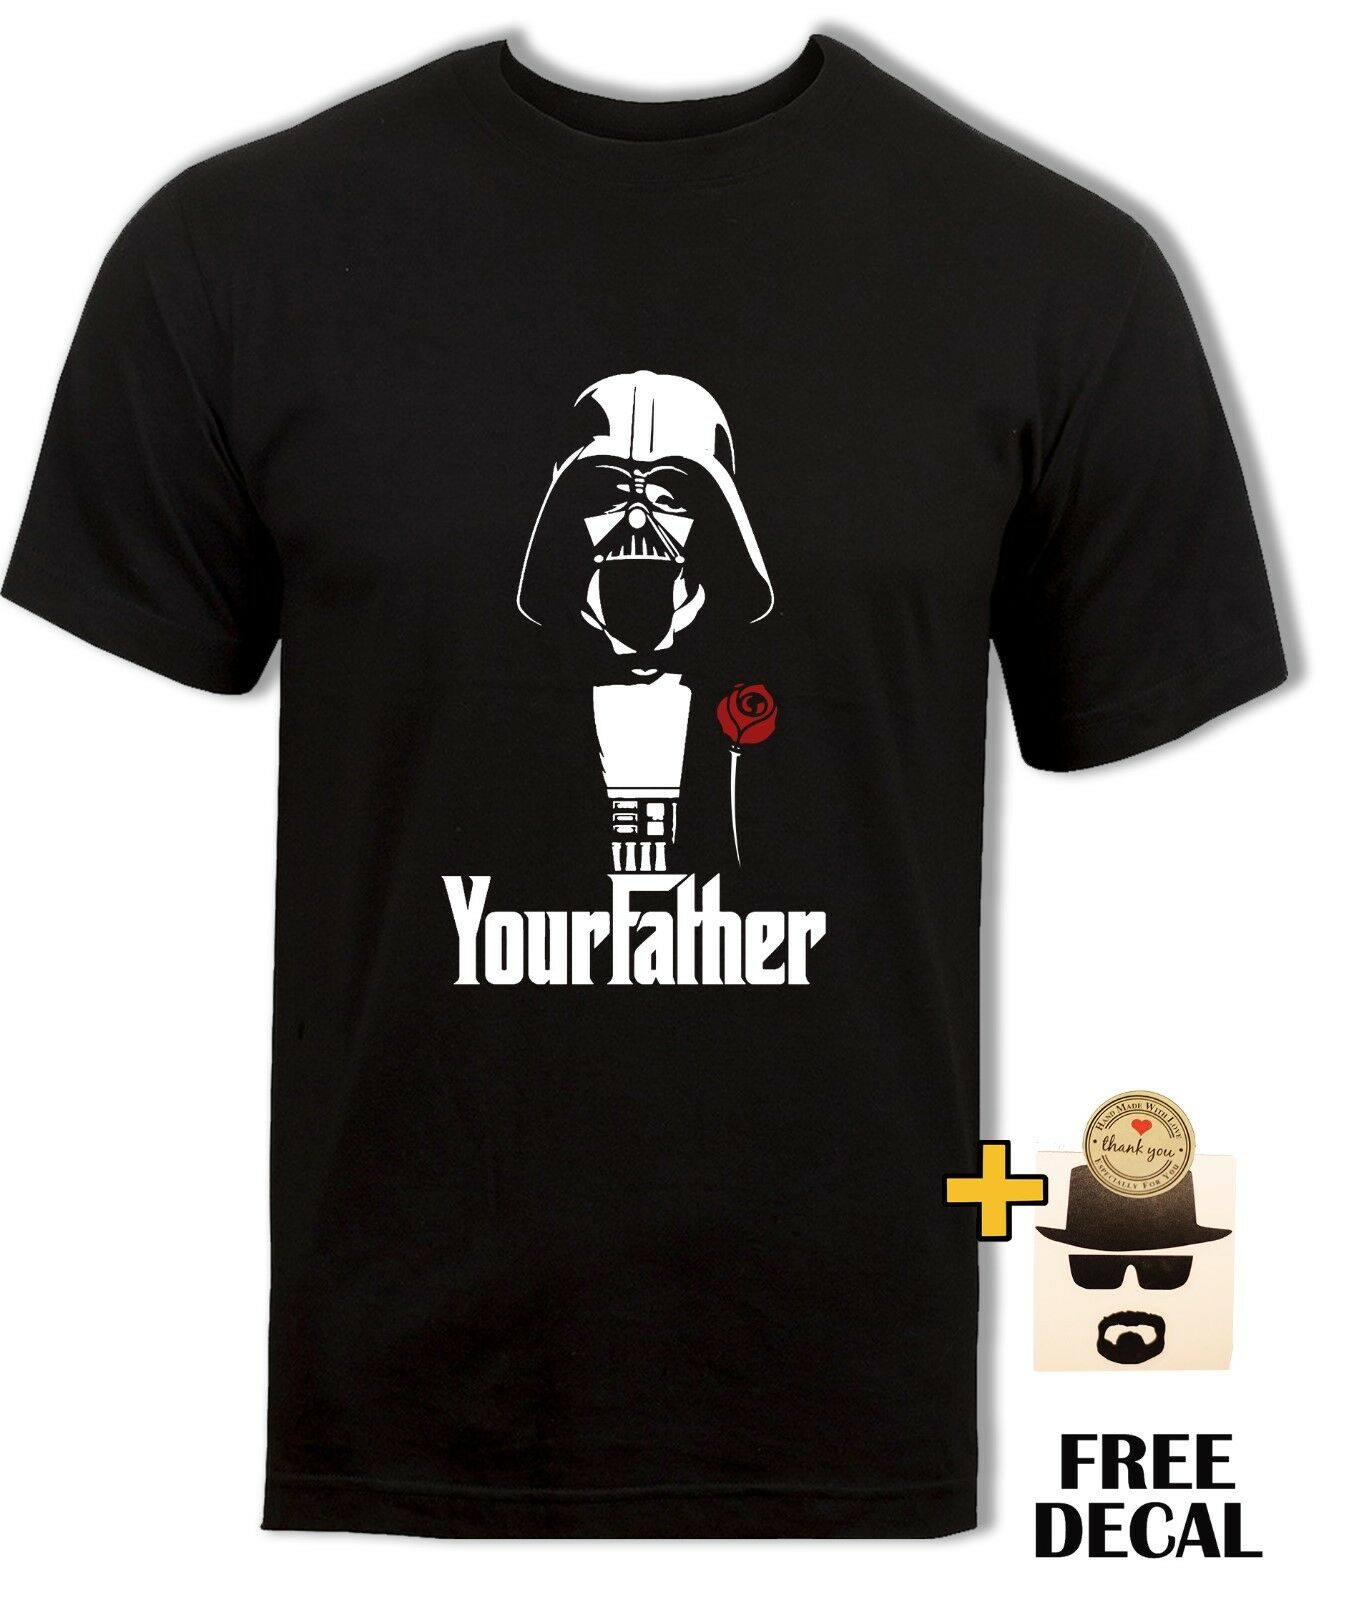 Starwars Darth Vader T-Shirt, The Godfather Parody, Your Father Men Black Tee